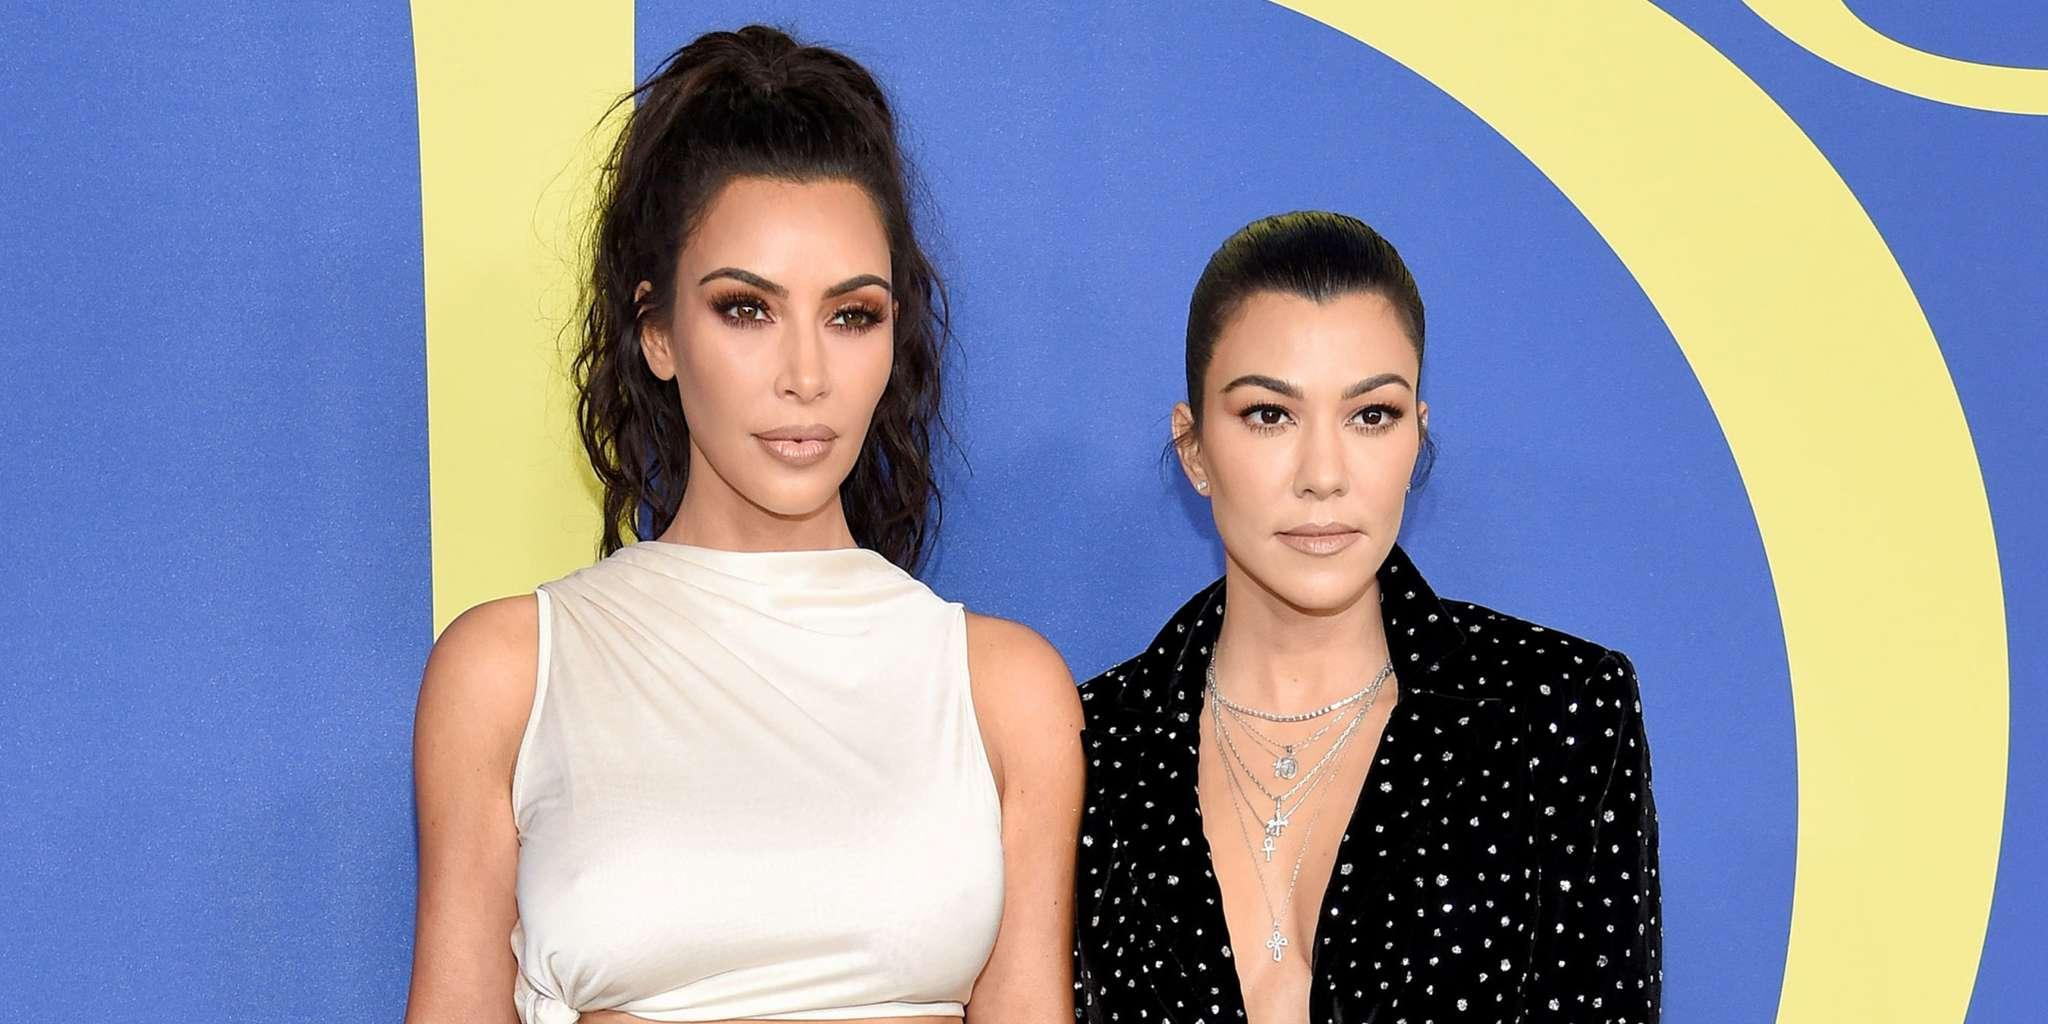 Kim Kardashian Allegedly 'Relieved' That Kourtney Kardashian Is Stepping Back From KUWK: 'She Was Over The Fighting And Kourtney's Attitude'